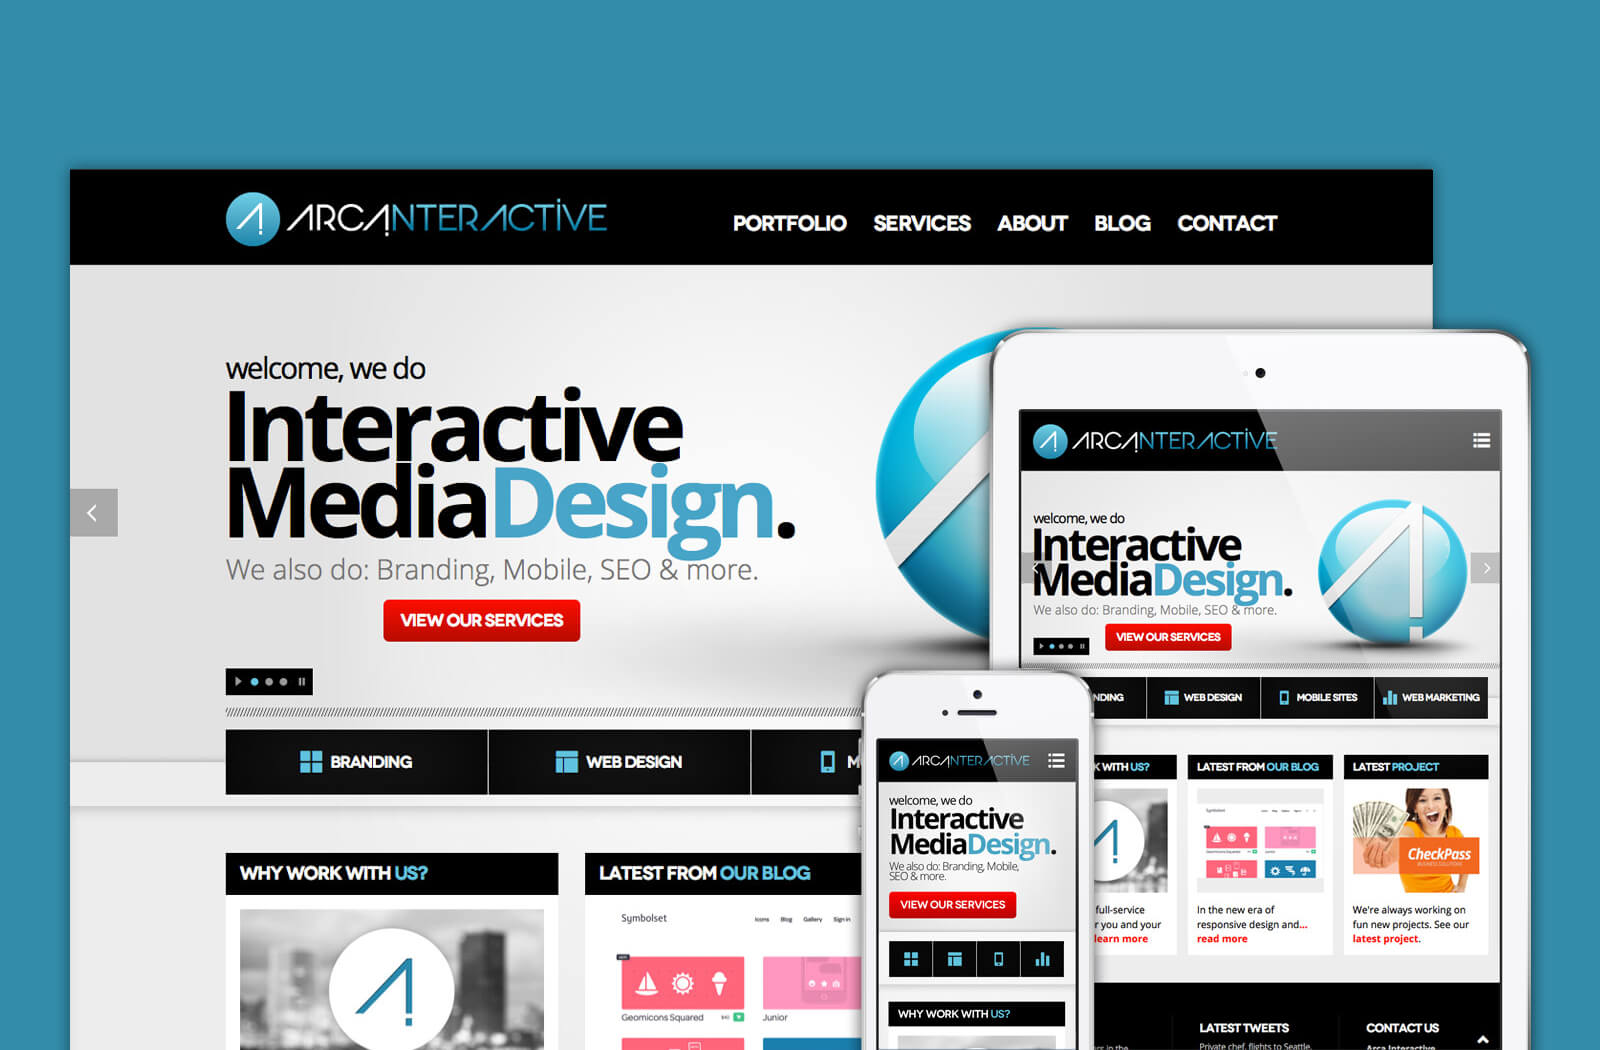 Arca Interactive Launches New Responsive Website